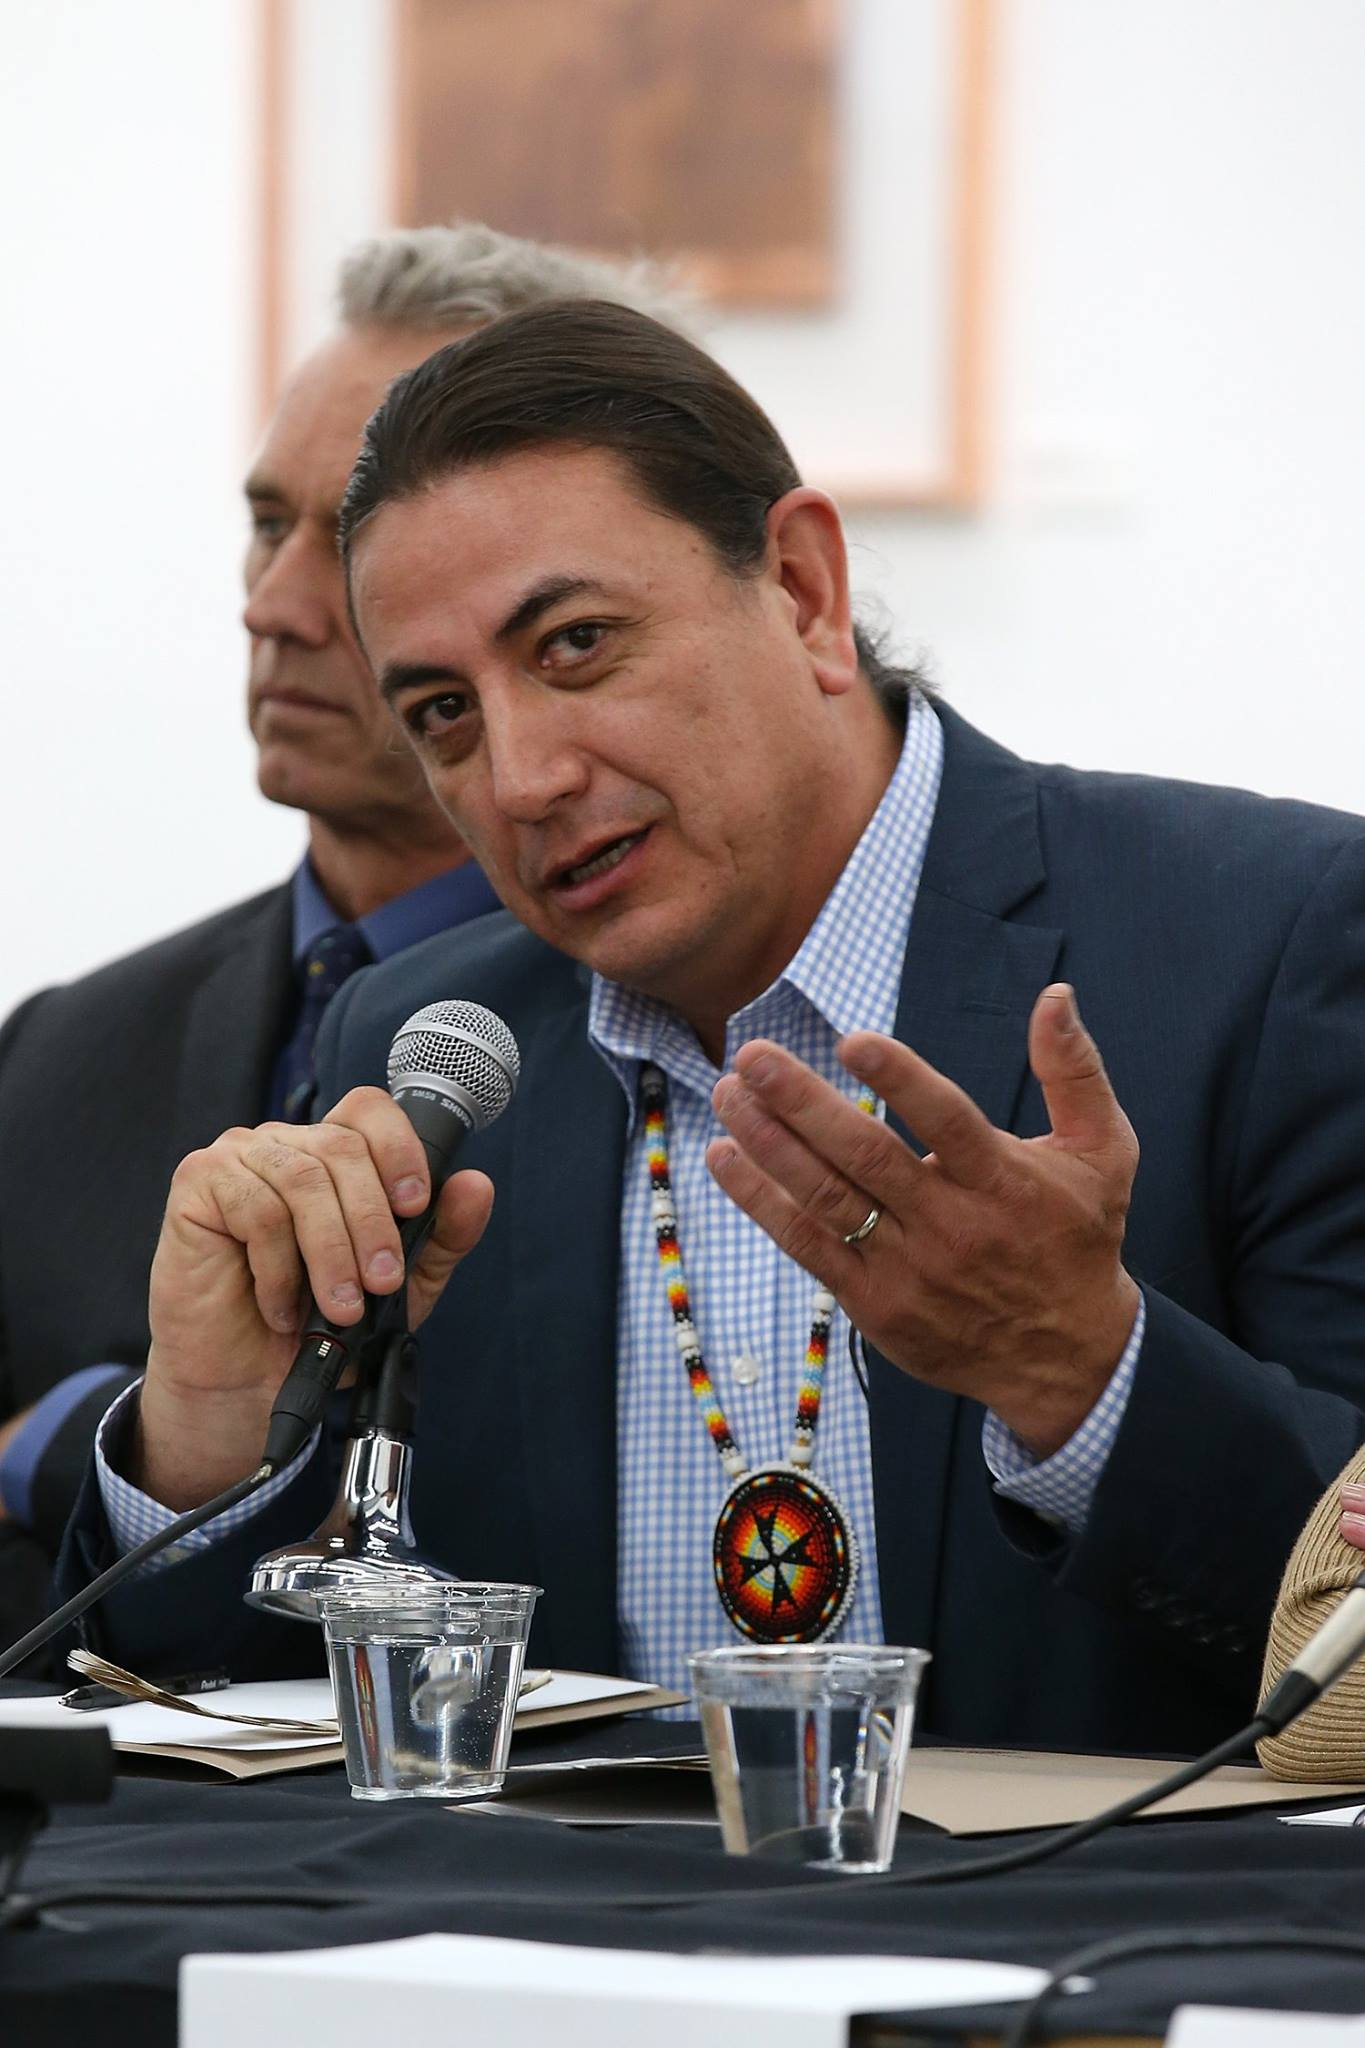 "Photo Credit: Depart Foundation   On December 15, 2016, North Dakota's Standing Rock Sioux Chairman, Dave Archambault II, met with Los Angeles areas Native American Leaders, Elders and Native led nonprofits for a welcome ceremony and private meeting hosted by the Depart Foundation ( https://www.facebook.com/depart.foundation/ ) in West Hollywood. The private meeting commenced with Mati Waiya (Wishtoyo Chumash Foundation Founder and Ceremonial Elder) placing a circle of tobacco with an abalone shell and sage bundles in the center of a circle to ground all participants in ceremony and a prayer given by Tongva Elder, Julia Bogany. All in attendance welcomed the Chairman with traditional and other gifts and words expressing solidarity and gratitude for the Standing Rock Sioux Tribe's leadership in providing the example of protesting in peace and prayer to protect their traditional land and water from the Dakota Access Pipeline in the face of a militarized police force.  http://www.npr.org/sections/codeswitch/2016/11/22/502068751/the-standing-rock-resistance-is-unprecedented-it-s-also-centuries-old . A discussion regarding the fact that ""Standing Rock is Everywhere"" layed the groundwork to speak about  local ""standing rock"" issues and a comparission of different laws used to help protect Native American cultural resources, water, sacred sites, and treaty rights and the complexity of working with Federal Agencies. Chairman Archambault expressed that he was very grateful for the overwhelming support and would be happy to reciprocate support in local efforts. The two hour meeting ended with a prayer given by Tongva Elder, Gloria Arellanes.  The Chairman went on to prepare for a first time public conversation in Los Angeles on a speakers panel with Robert Kennedy, Jr., Jane Fonda, Bruce Kapson, moderator Jon Christensen and special guest speaker, LaDonna Brave Bull Allard.The panel spoke to the current status of legal and on the ground efforts being made to stop the Dakota Access Pipeline from being completed and the fact that, even with, the December 5th announcement that the Army Corp of Engineers would not permit the Energy Transfer Partners to proceed with the Dakota Access Pipeline, the battle was not over. The Chairman had previously announced, ""I know this is a victory for this one DAPL battle, but we have not won the DAPL war. There will be more battles ahead and we will contine to strategize and win. The camp has brought us this far -- now it is time we pivot to the next phase of this struggle. That will be lead on different fronts like in court, with the new Administration, with Congress, and with investors."" ( standingrock.org  and  sacredstonecamp.org ).   The Chairman shared how unexpected it was that the ""camp"" would grow to include literally hundreds of Tribes, and thousands of people; Native and Non-Native Folks, Environmentalist, Celebrity Activists, Veterans, supporters from all over the world, young and old. This movement is a profoundly important example and reminder of, as LaDonna says, ""learning to live with the Earth again."" Chairman Archambault, shared, that he didn't want people to come here (the camp) to die. We want our young warriors to live. To be good fathers, parents.  Robert Kennedy, Jr. untangled the legal issues and put it into plain terms for all to understand. Jane Fonda strongly encouraged people to  divest from the financial institutions that are backing the DAPL project ( defunddapl.org ). She's currently organizing to do just that. For her Birthday on December 21st - the Day of the Winter Solstice Jane will remove her money from a LA area Wells Fargo Bank in efforts to encourage others to follow suit.    To Donate to the NODAPL effort directly to the Standing Rock Sioux Tribe Go To:   http://standwithstandingrock.net/donate/   # defunddapl #StandingRockisEverywhere #DepartFoundation # wishtoyochumashfoundation #waterislife  #Tongva #Tataviam #Chumash #acjachemen #Lanativeamericancommission #sacredplacesinstitute #anauacalmecac #metabolicstudio #vck #ccka #wka #LDF #SGA    Special Thanks to the generous host  Depart Foundation and the Tongva Elders of Los Angeles for opening and closing these two events with prayer."